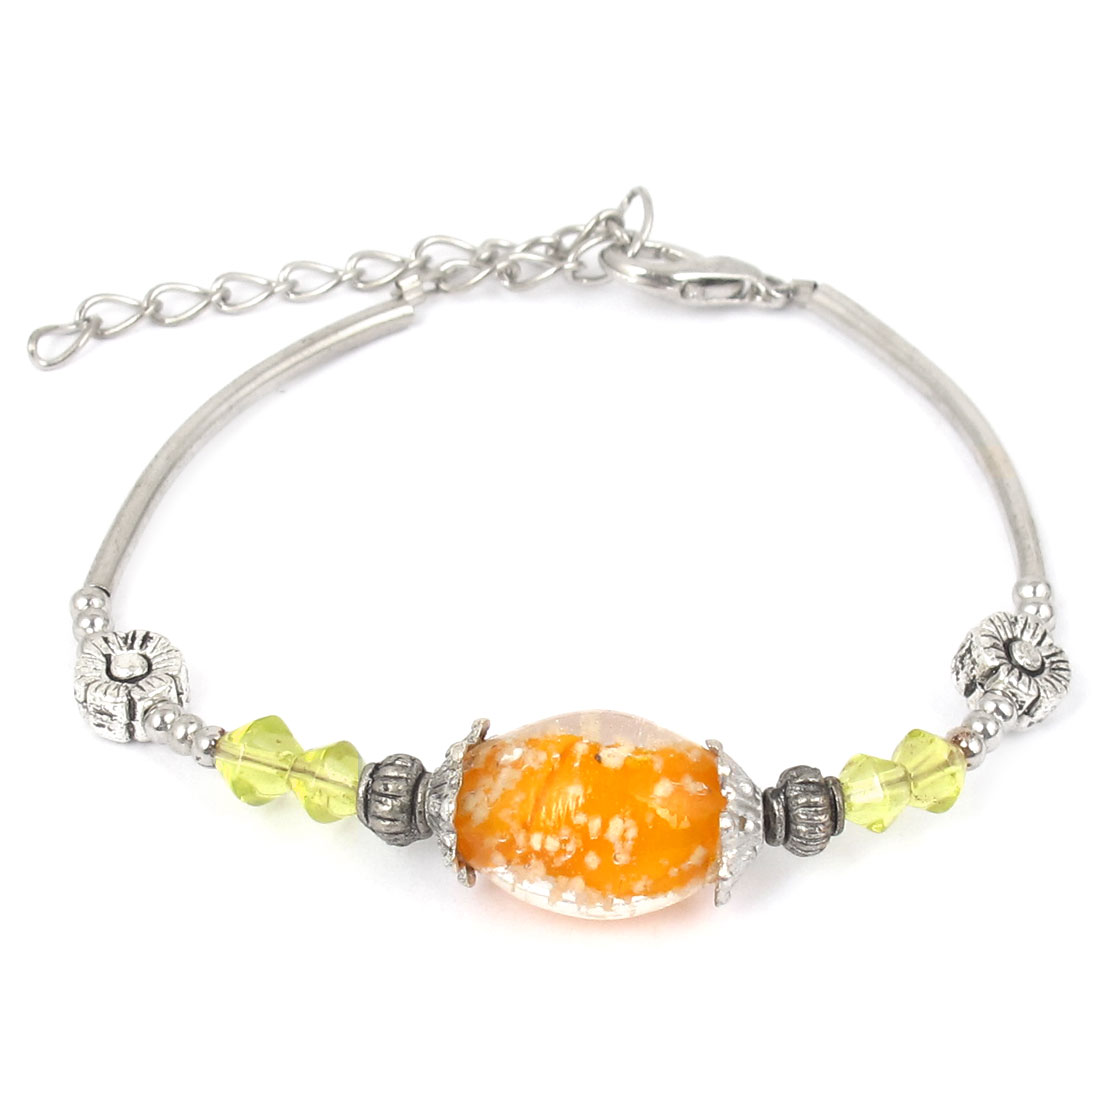 Women Lobster Clasp Link Oval Bead Detail Wrist Decoration Bracelet Bangle Orange